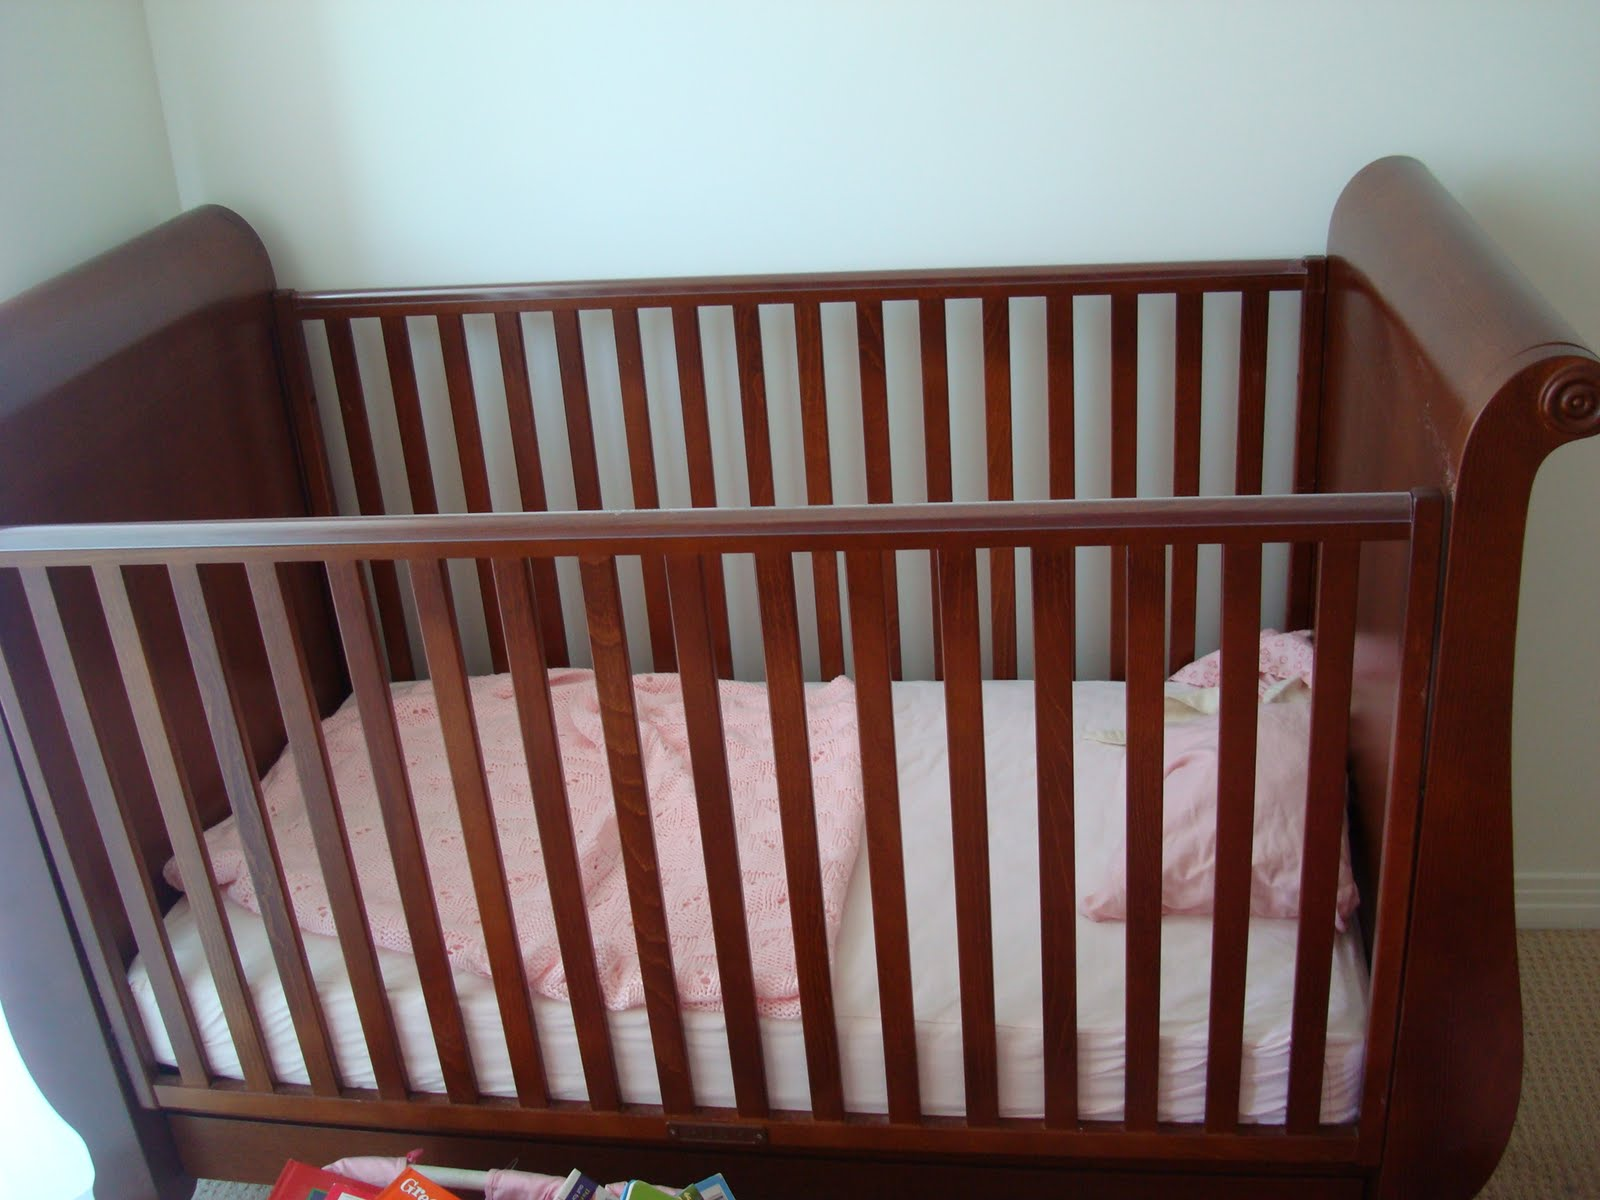 Crib for sale craigslist - It Was A Great Piece Of Furniture And It Was Very Pricey When We Bought It Because That S Solid Wood Not Fake Particle Board And Each Side Weighed About 75